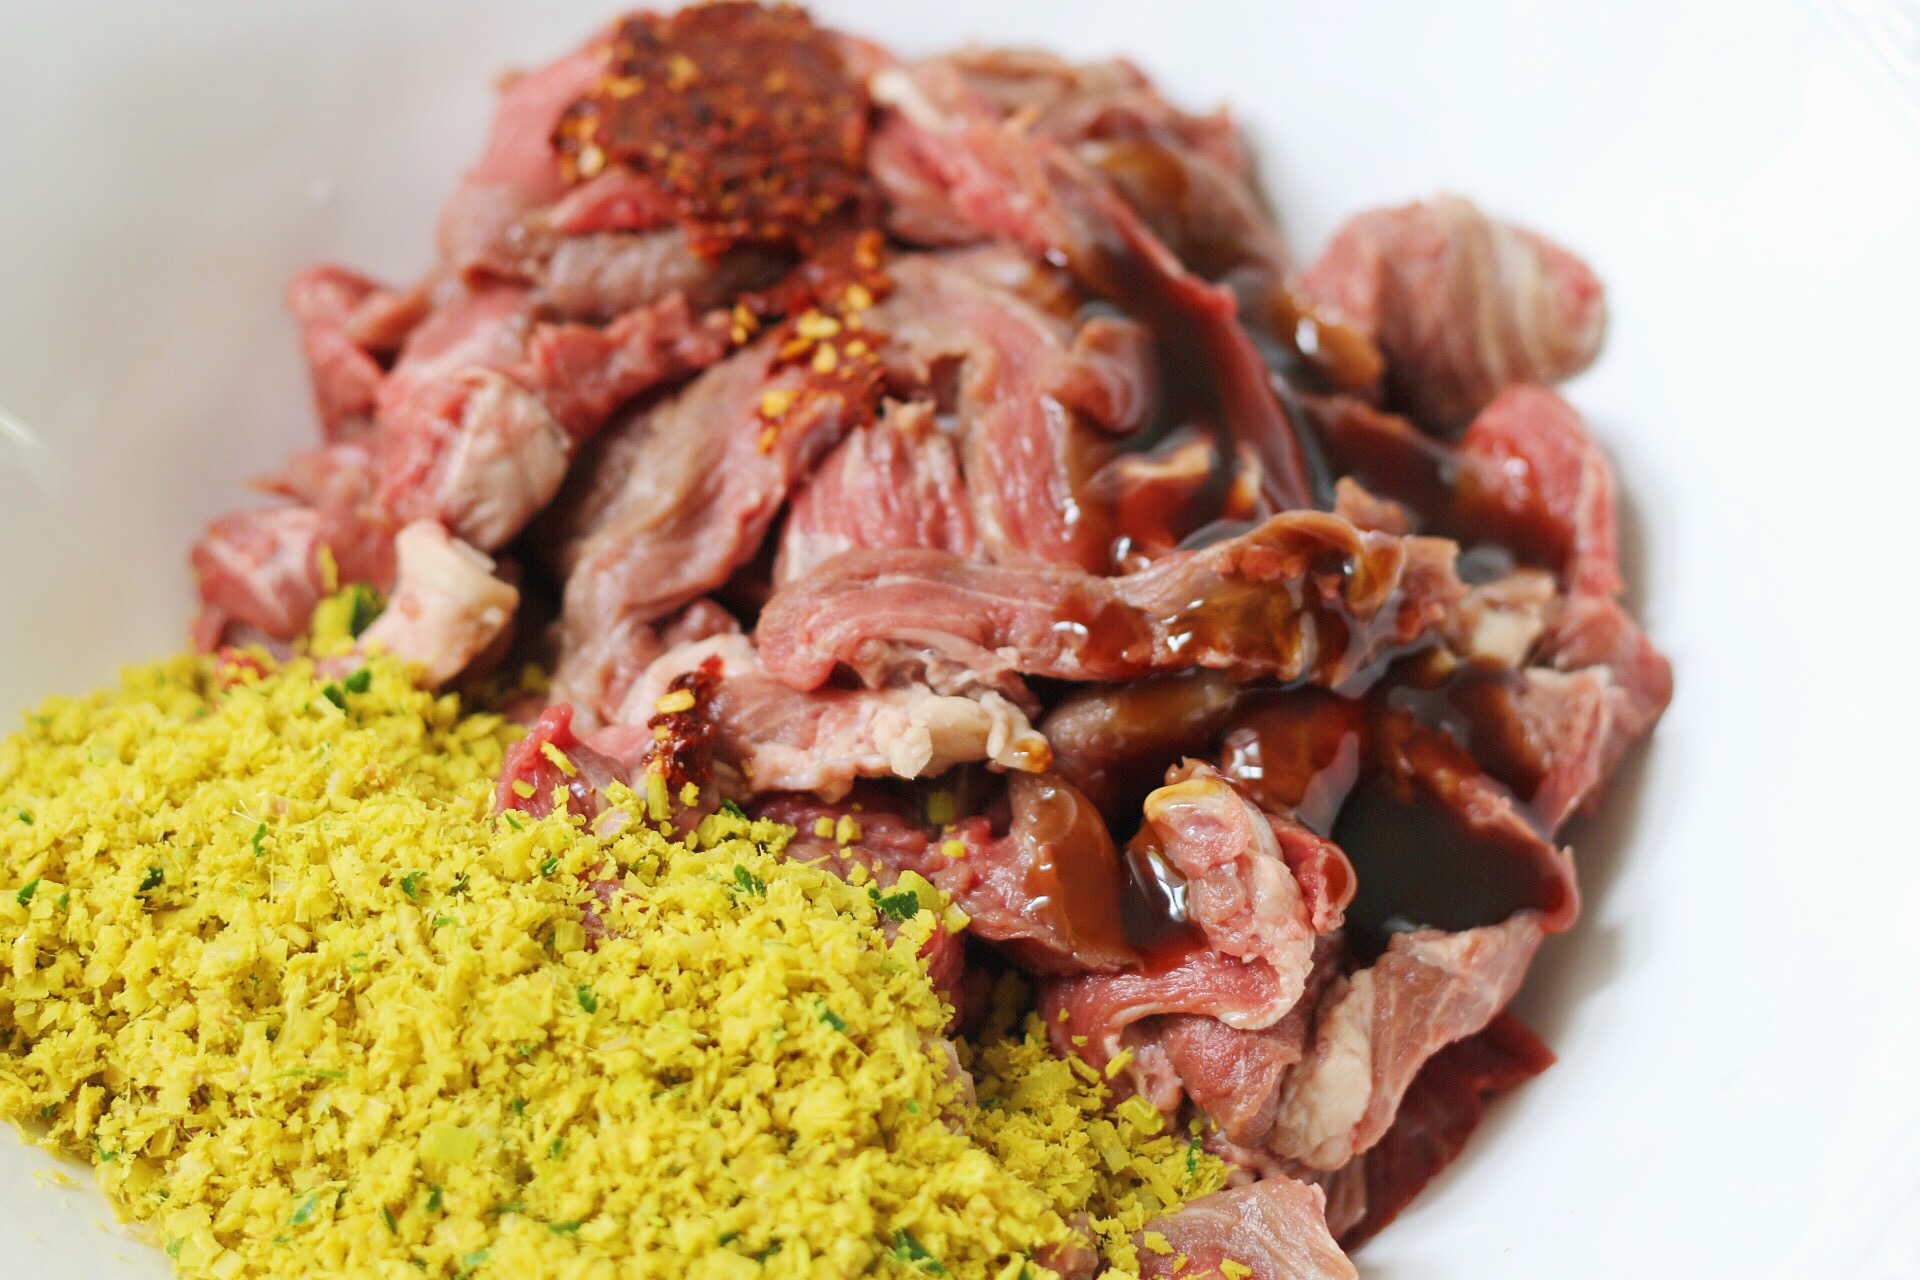 Mix your sliced beef with lemongrass paste, oyster sauce, and minced chili.